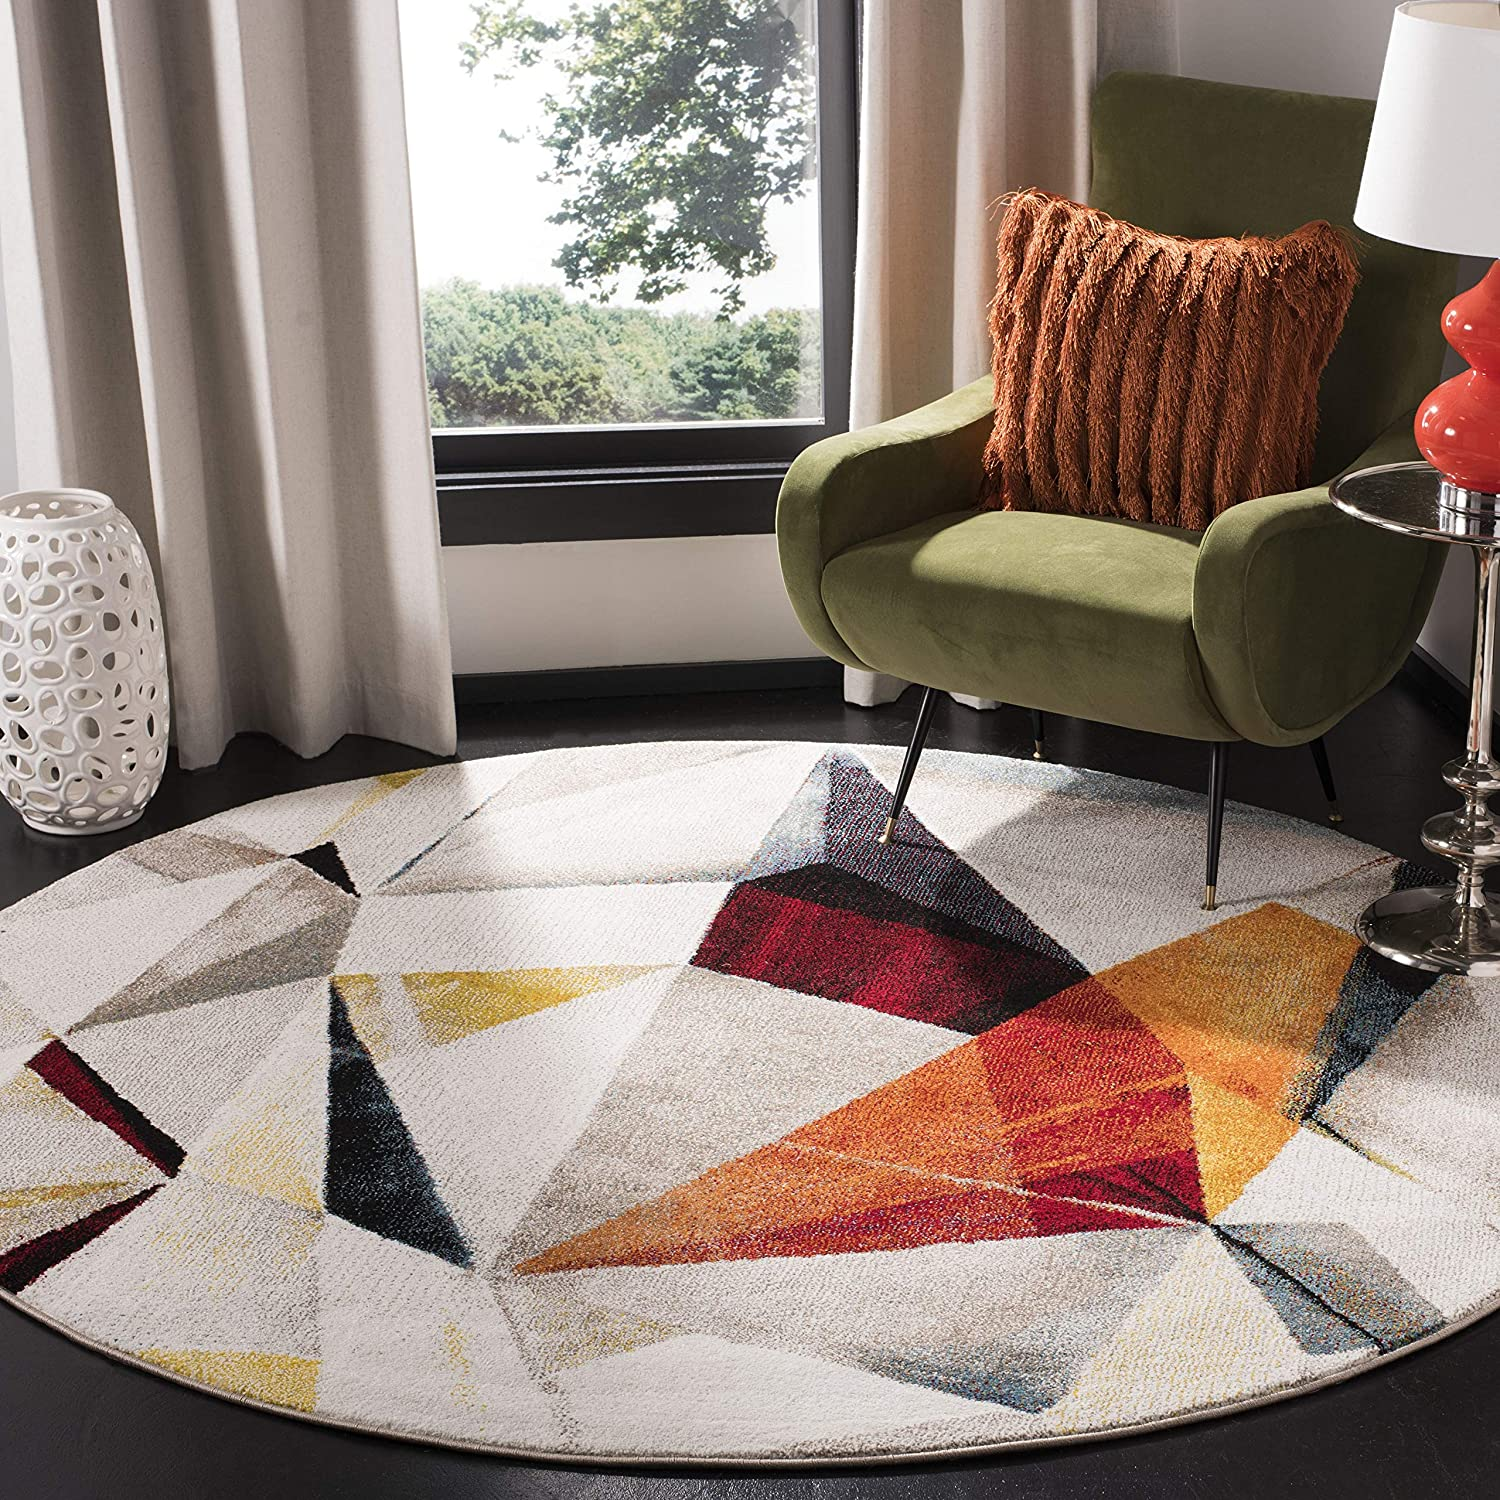 Amazon Com Safavieh Porcello Collection Prl6940f Modern Abstract Non Shedding Stain Resistant Living Room Bedroom Area Rug 6 7 X Round Light Grey Orange Furniture Decor